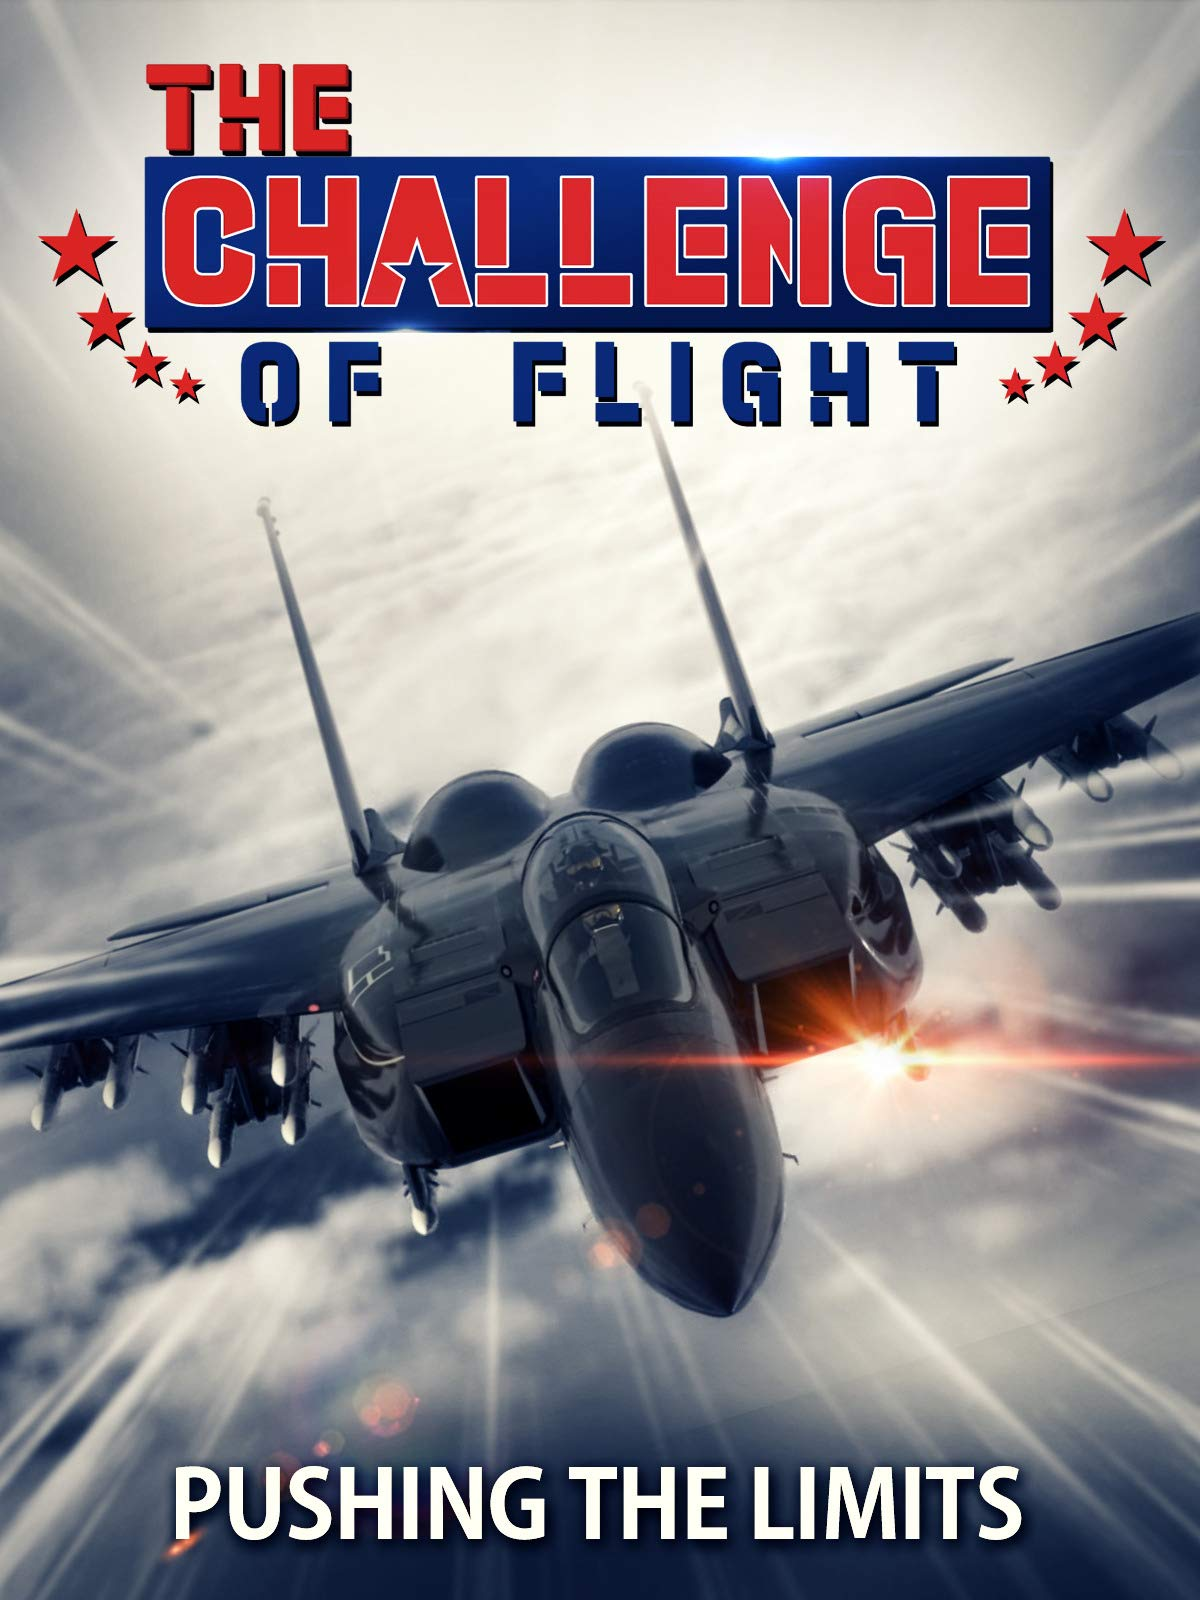 The Challenge of Flight - Pushing The Limits